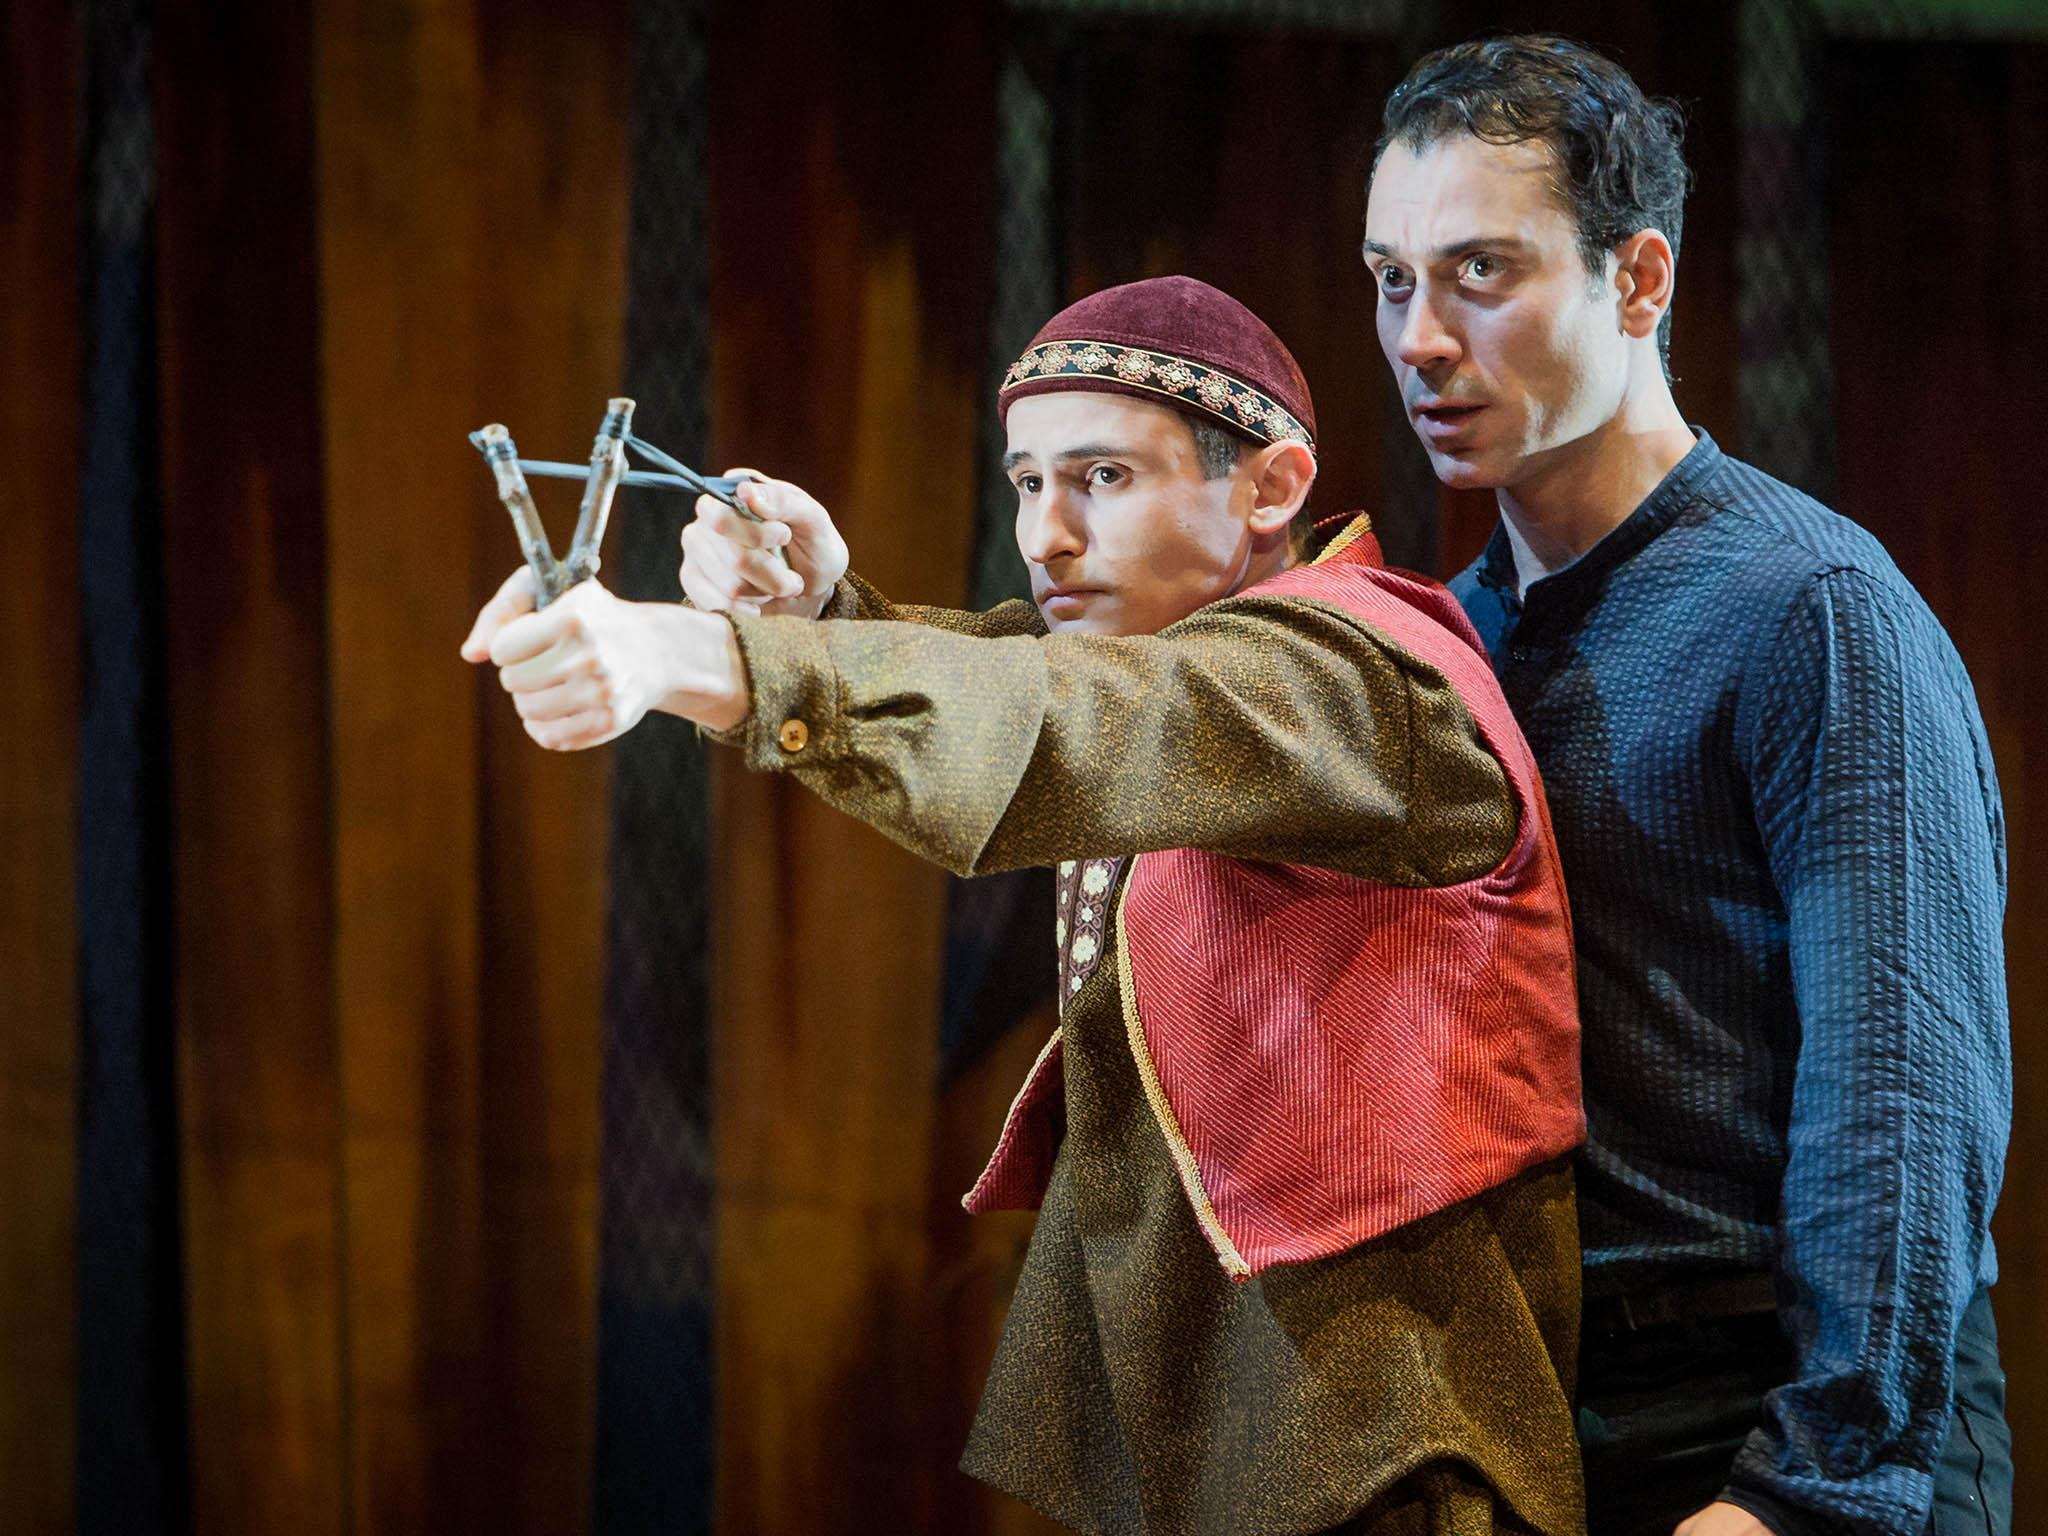 the kite runner wyndham s theatre london review a performance the kite runner wyndham s theatre london review a performance that lacked children still comes up winning the